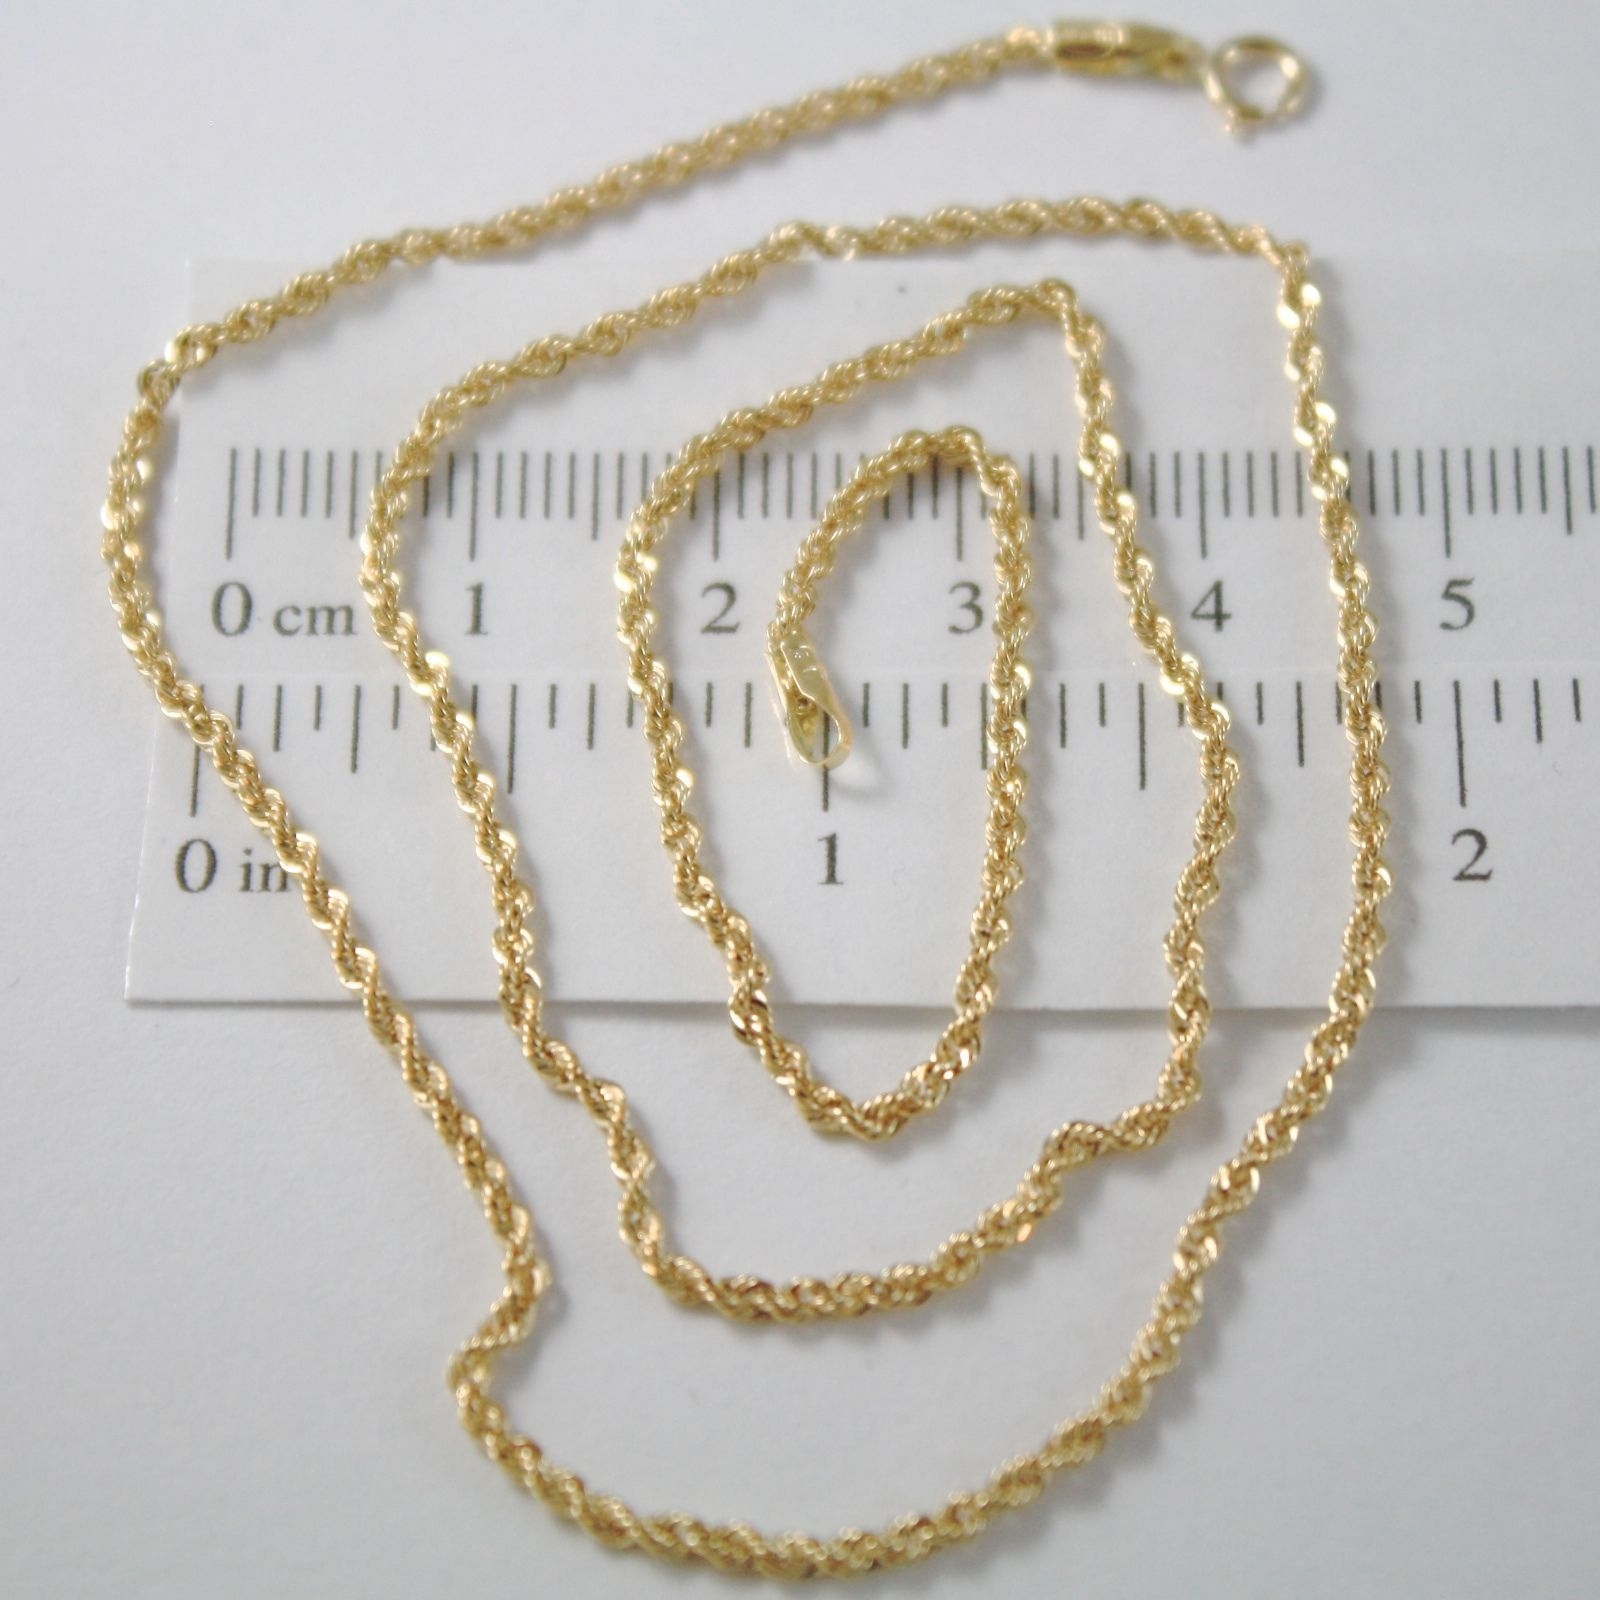 CHAIN ROPE BRAIDED YELLOW GOLD 750 18K, 40 45 50 60 CM, THICKNESS 2 MM